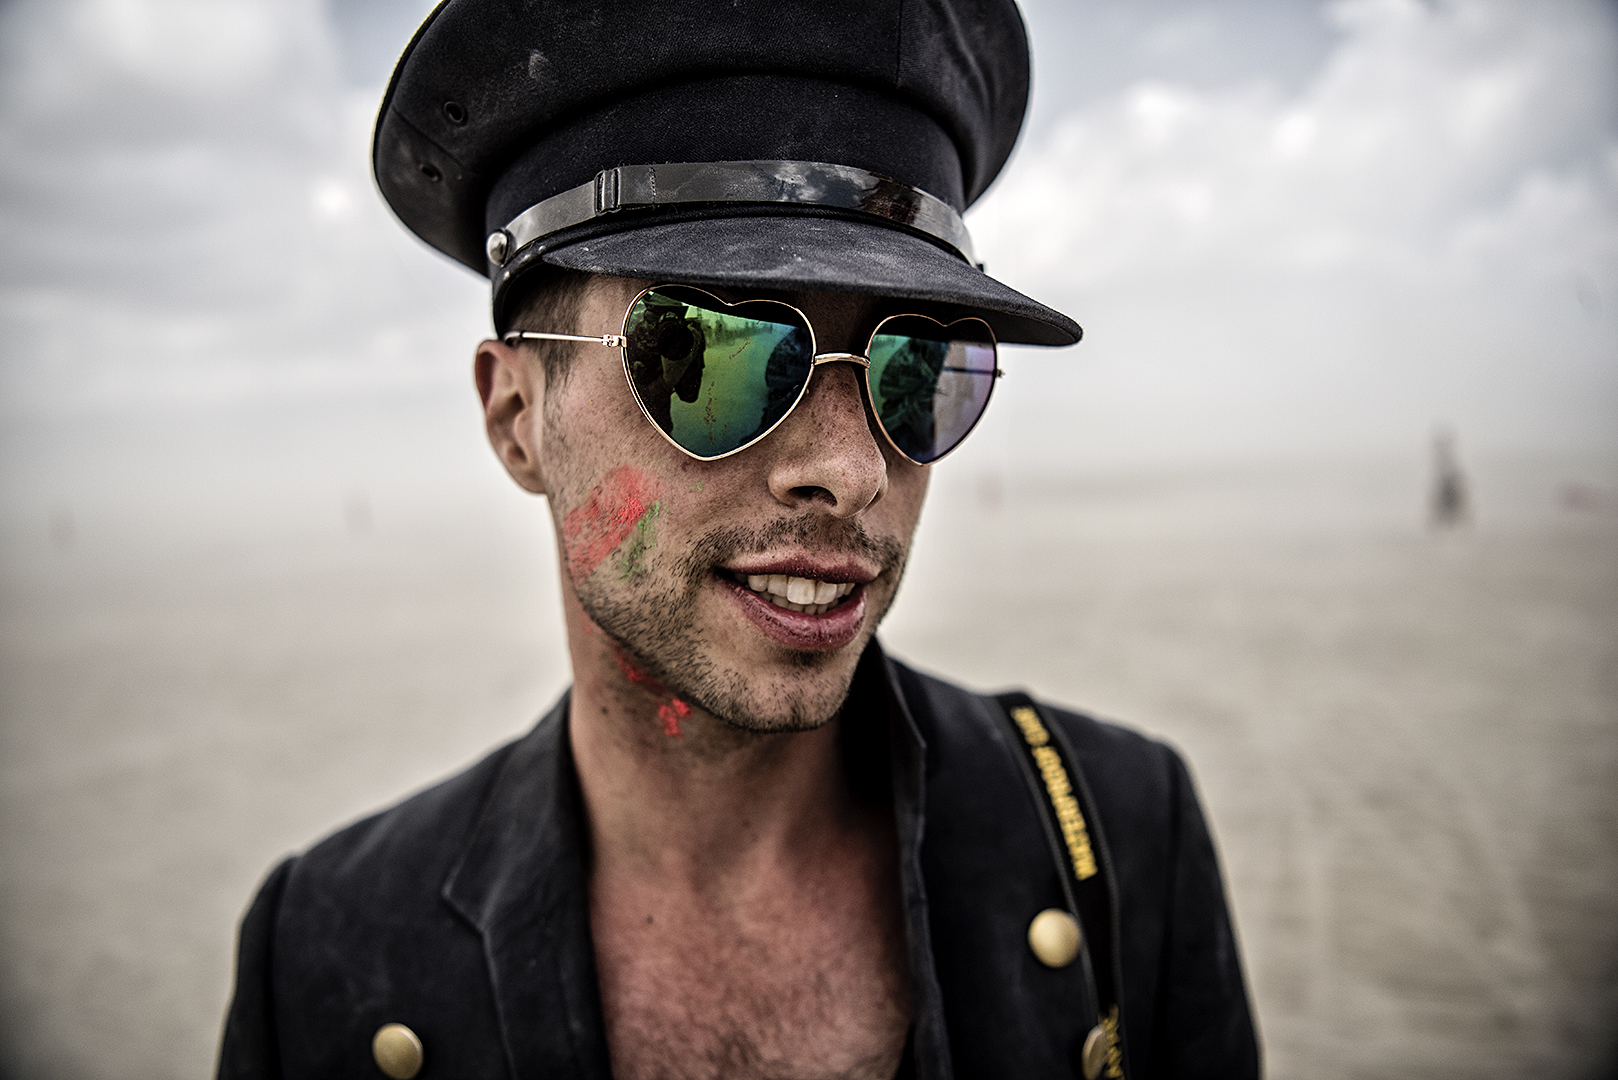 Marek Musil - Burning Man - Faces